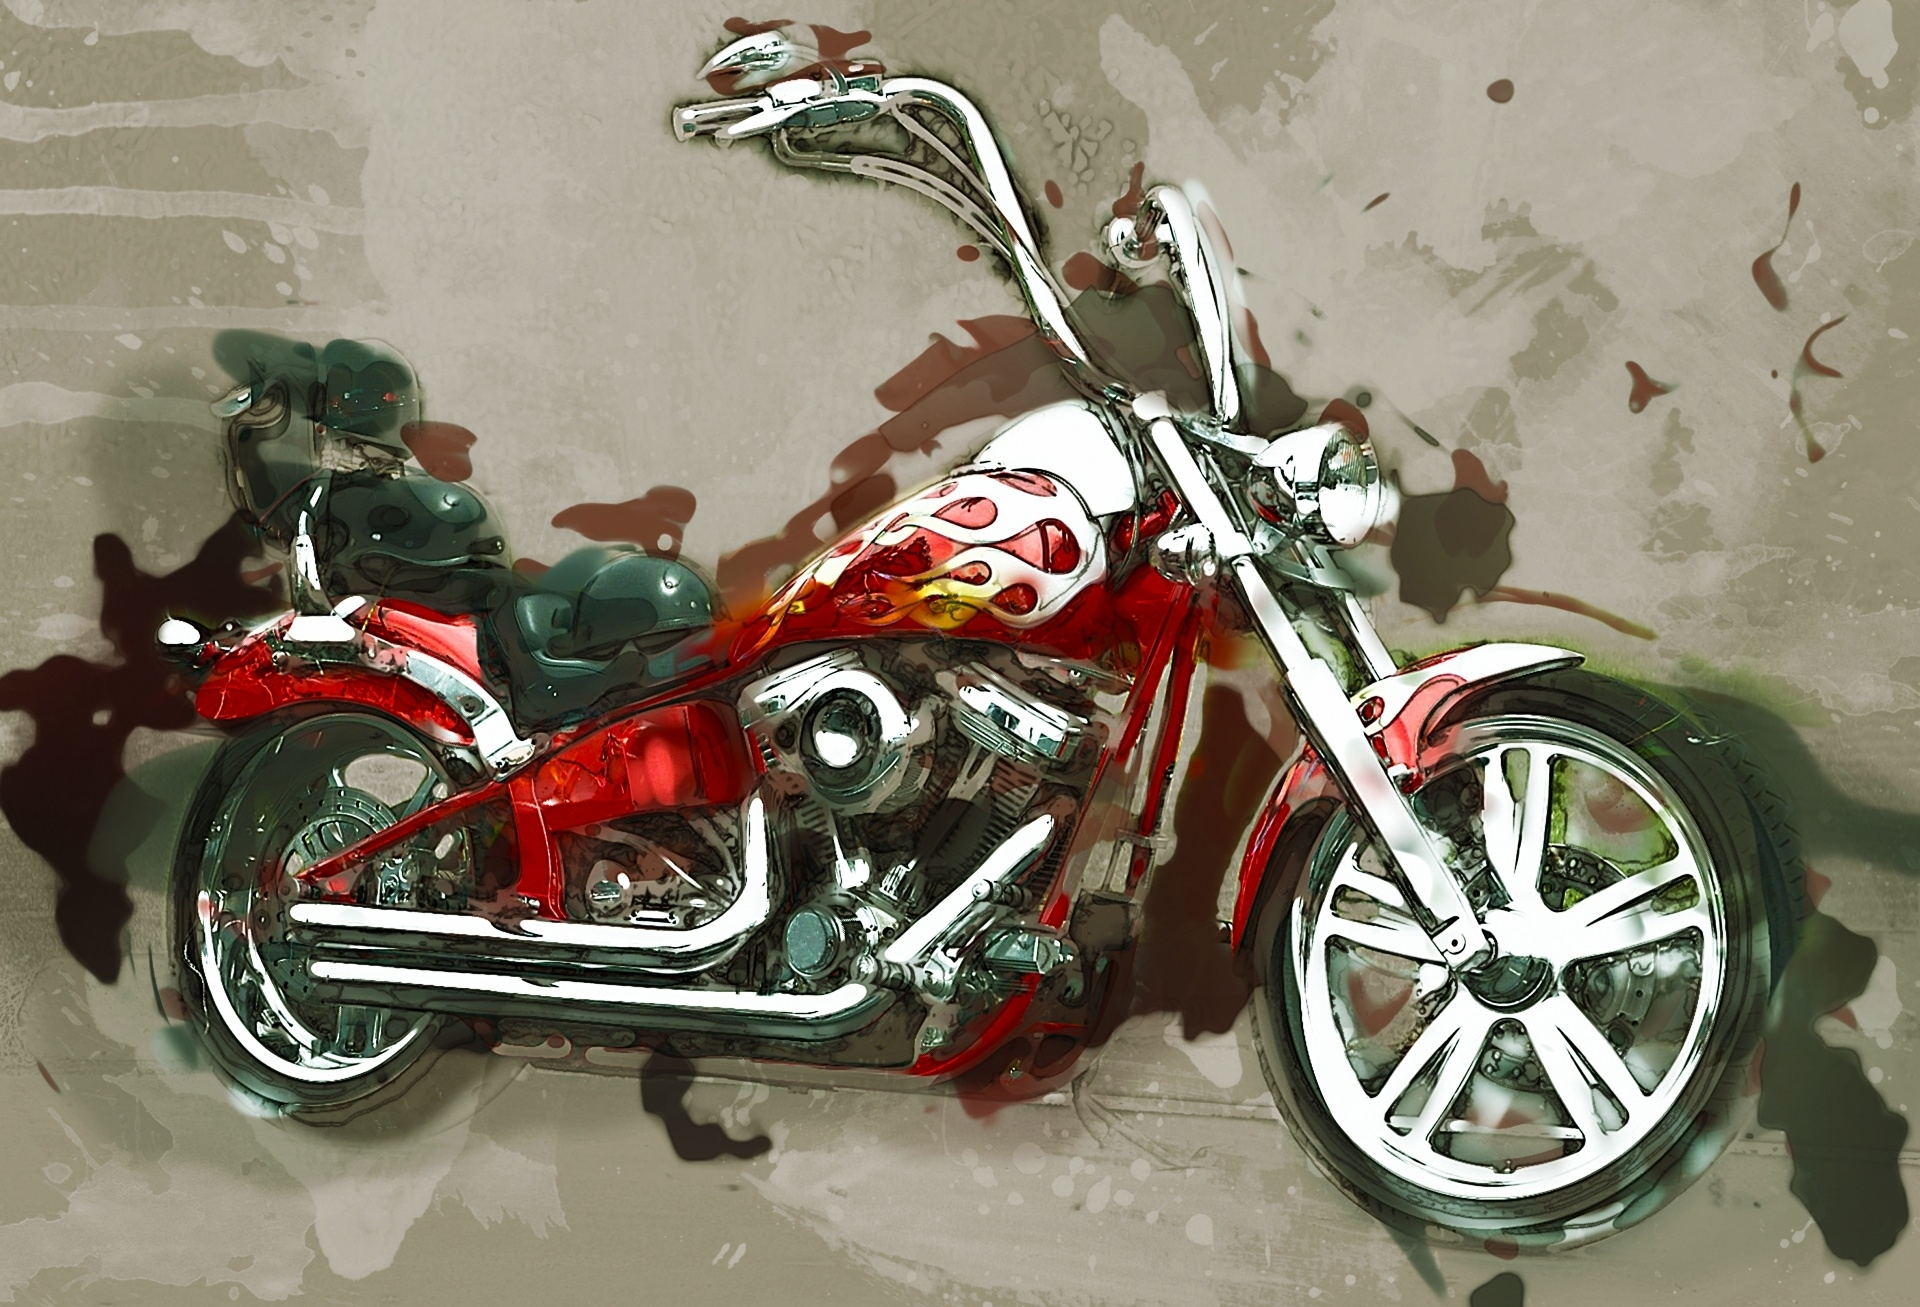 Motorcycle Wall Art Free Stock Photo – Public Domain Pictures Regarding Most Up To Date Motorcycle Wall Art (Gallery 9 of 20)